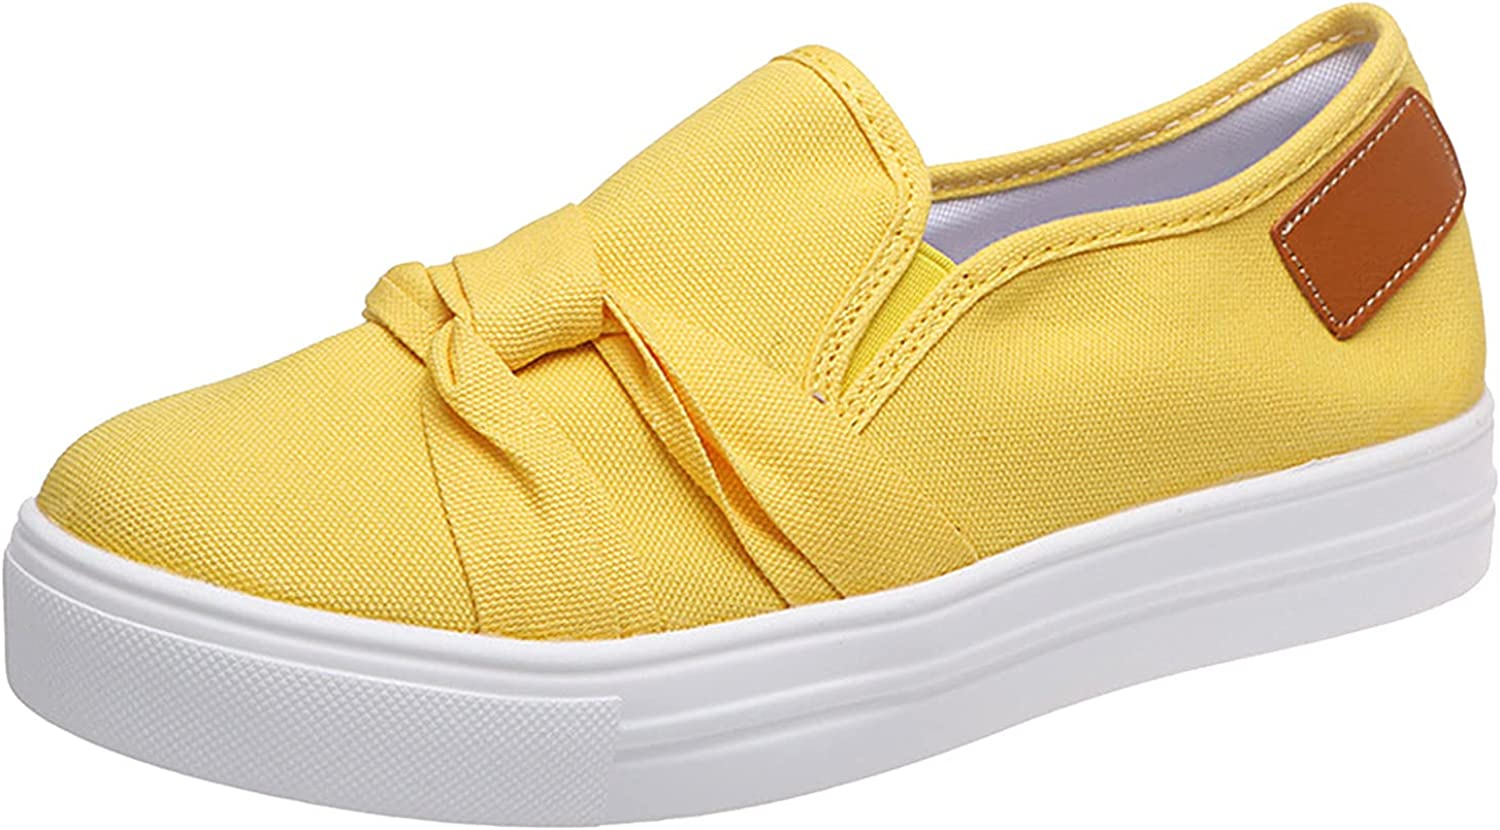 Women's Bowknot Elastic Solid Color Flat Breathable Canvas Shoes Loafers Slip On Flats Comfort Driving Office Loafer Shoes